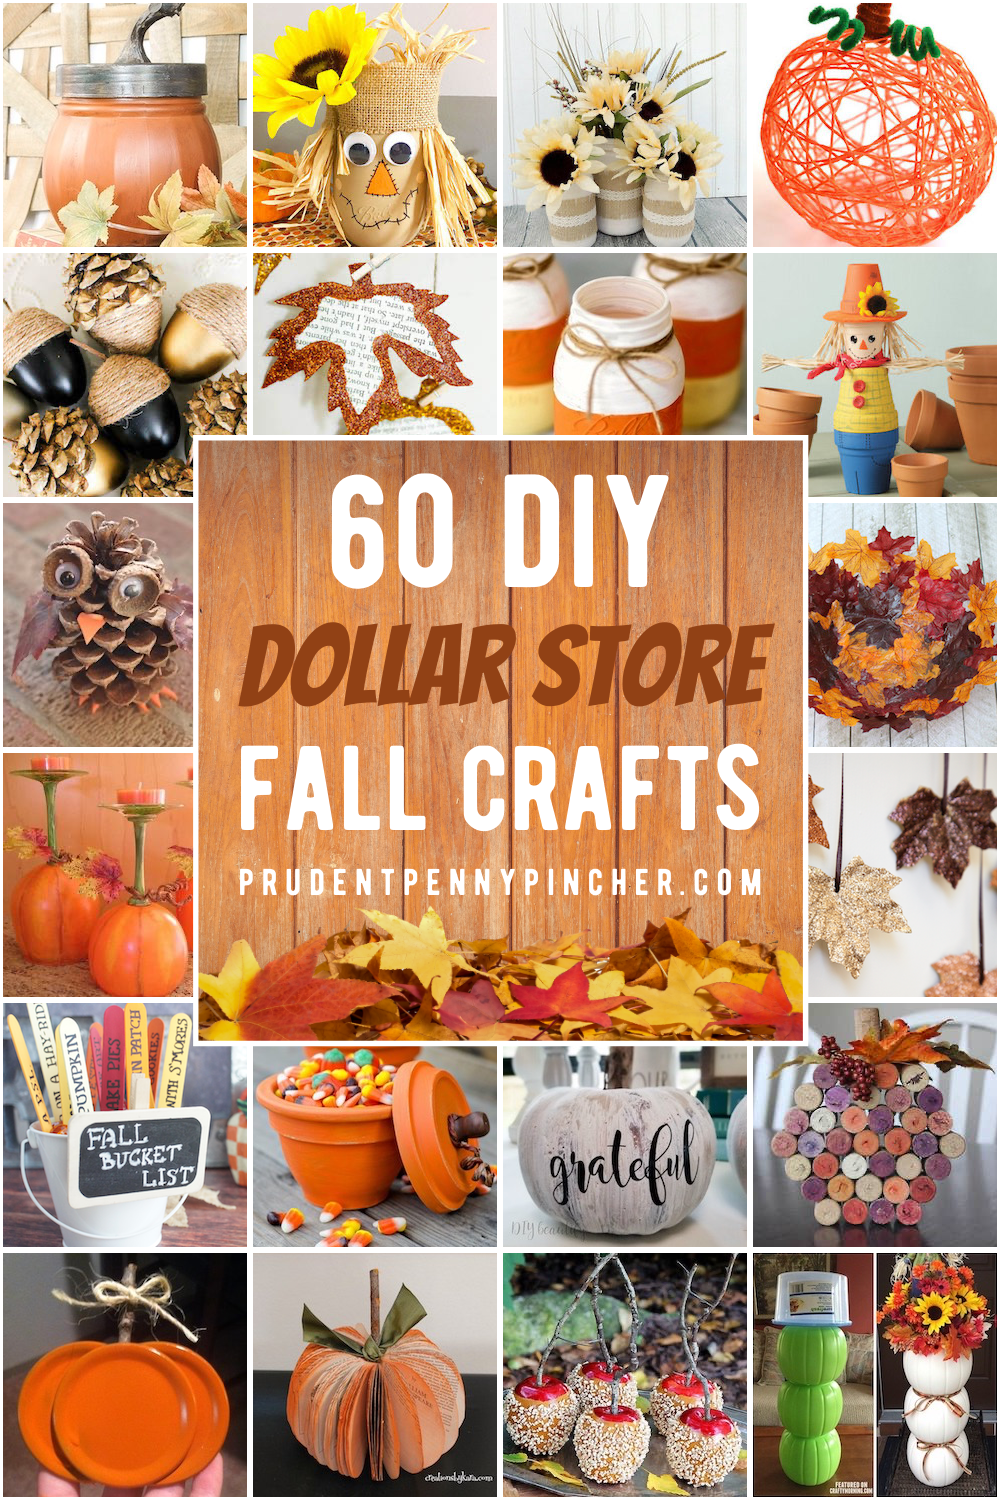 60 Dollar Store Fall Crafts Easy Fall Crafts Fall Crafts For Adults Fall Crafts